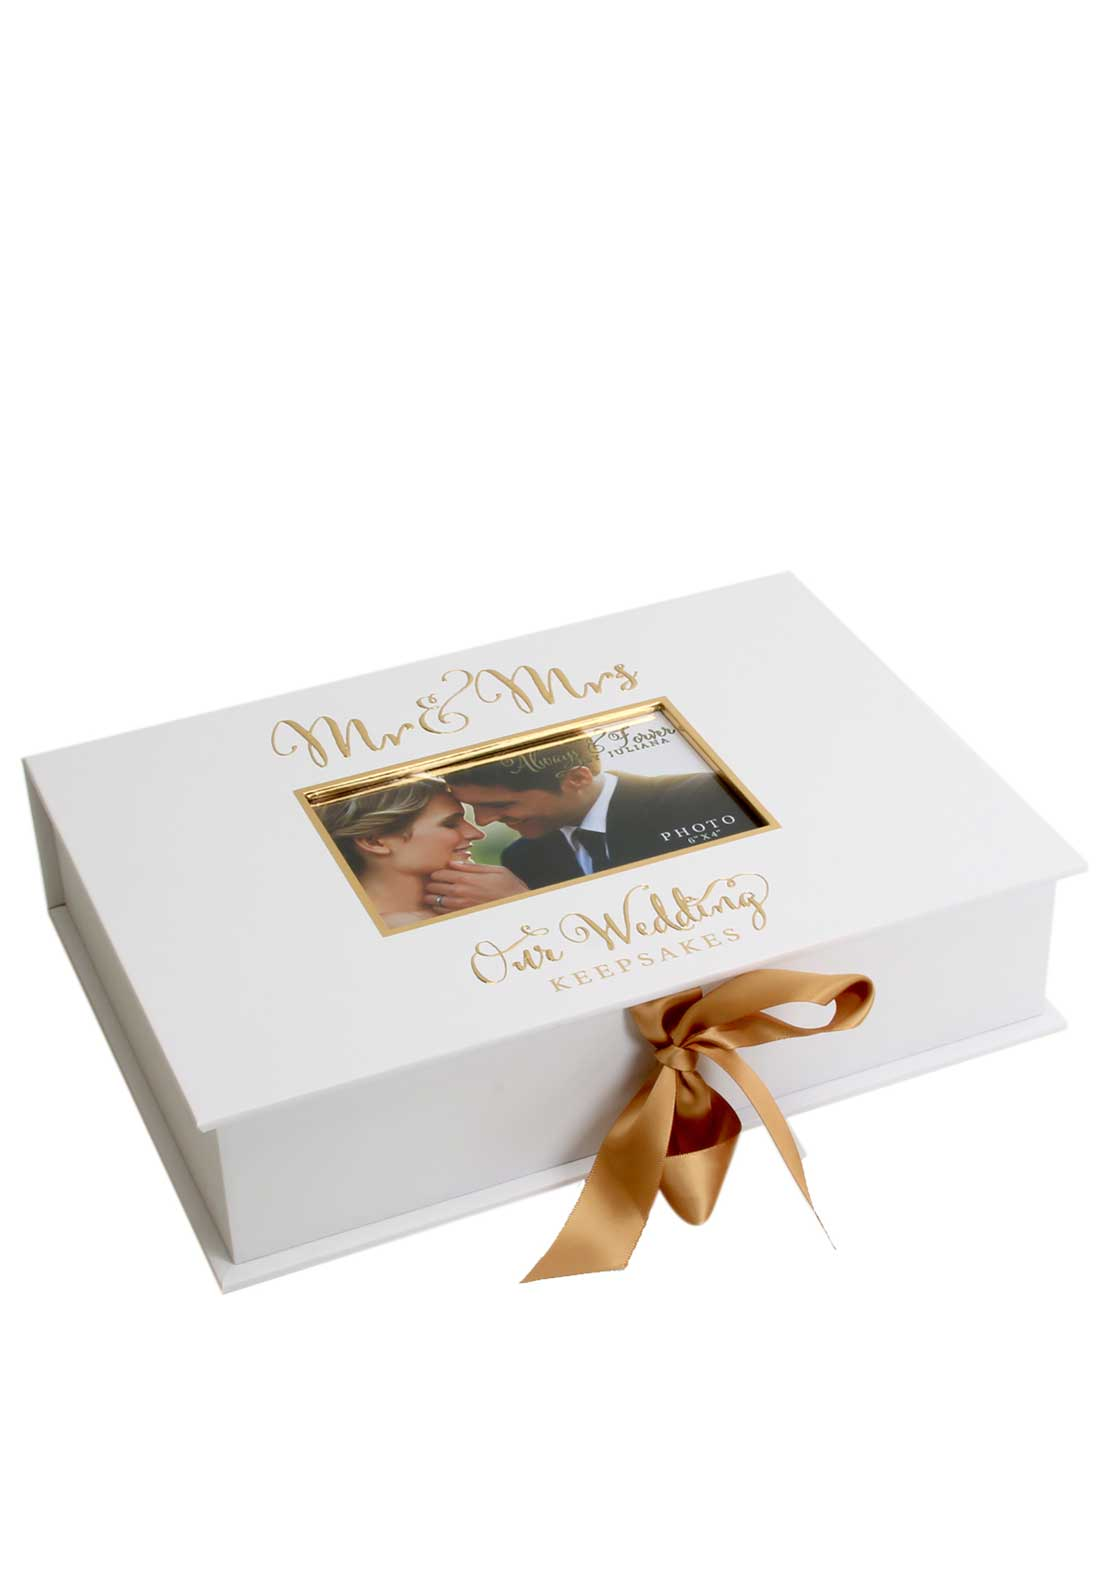 Juliana Our Wedding Keepsakes Memory Box